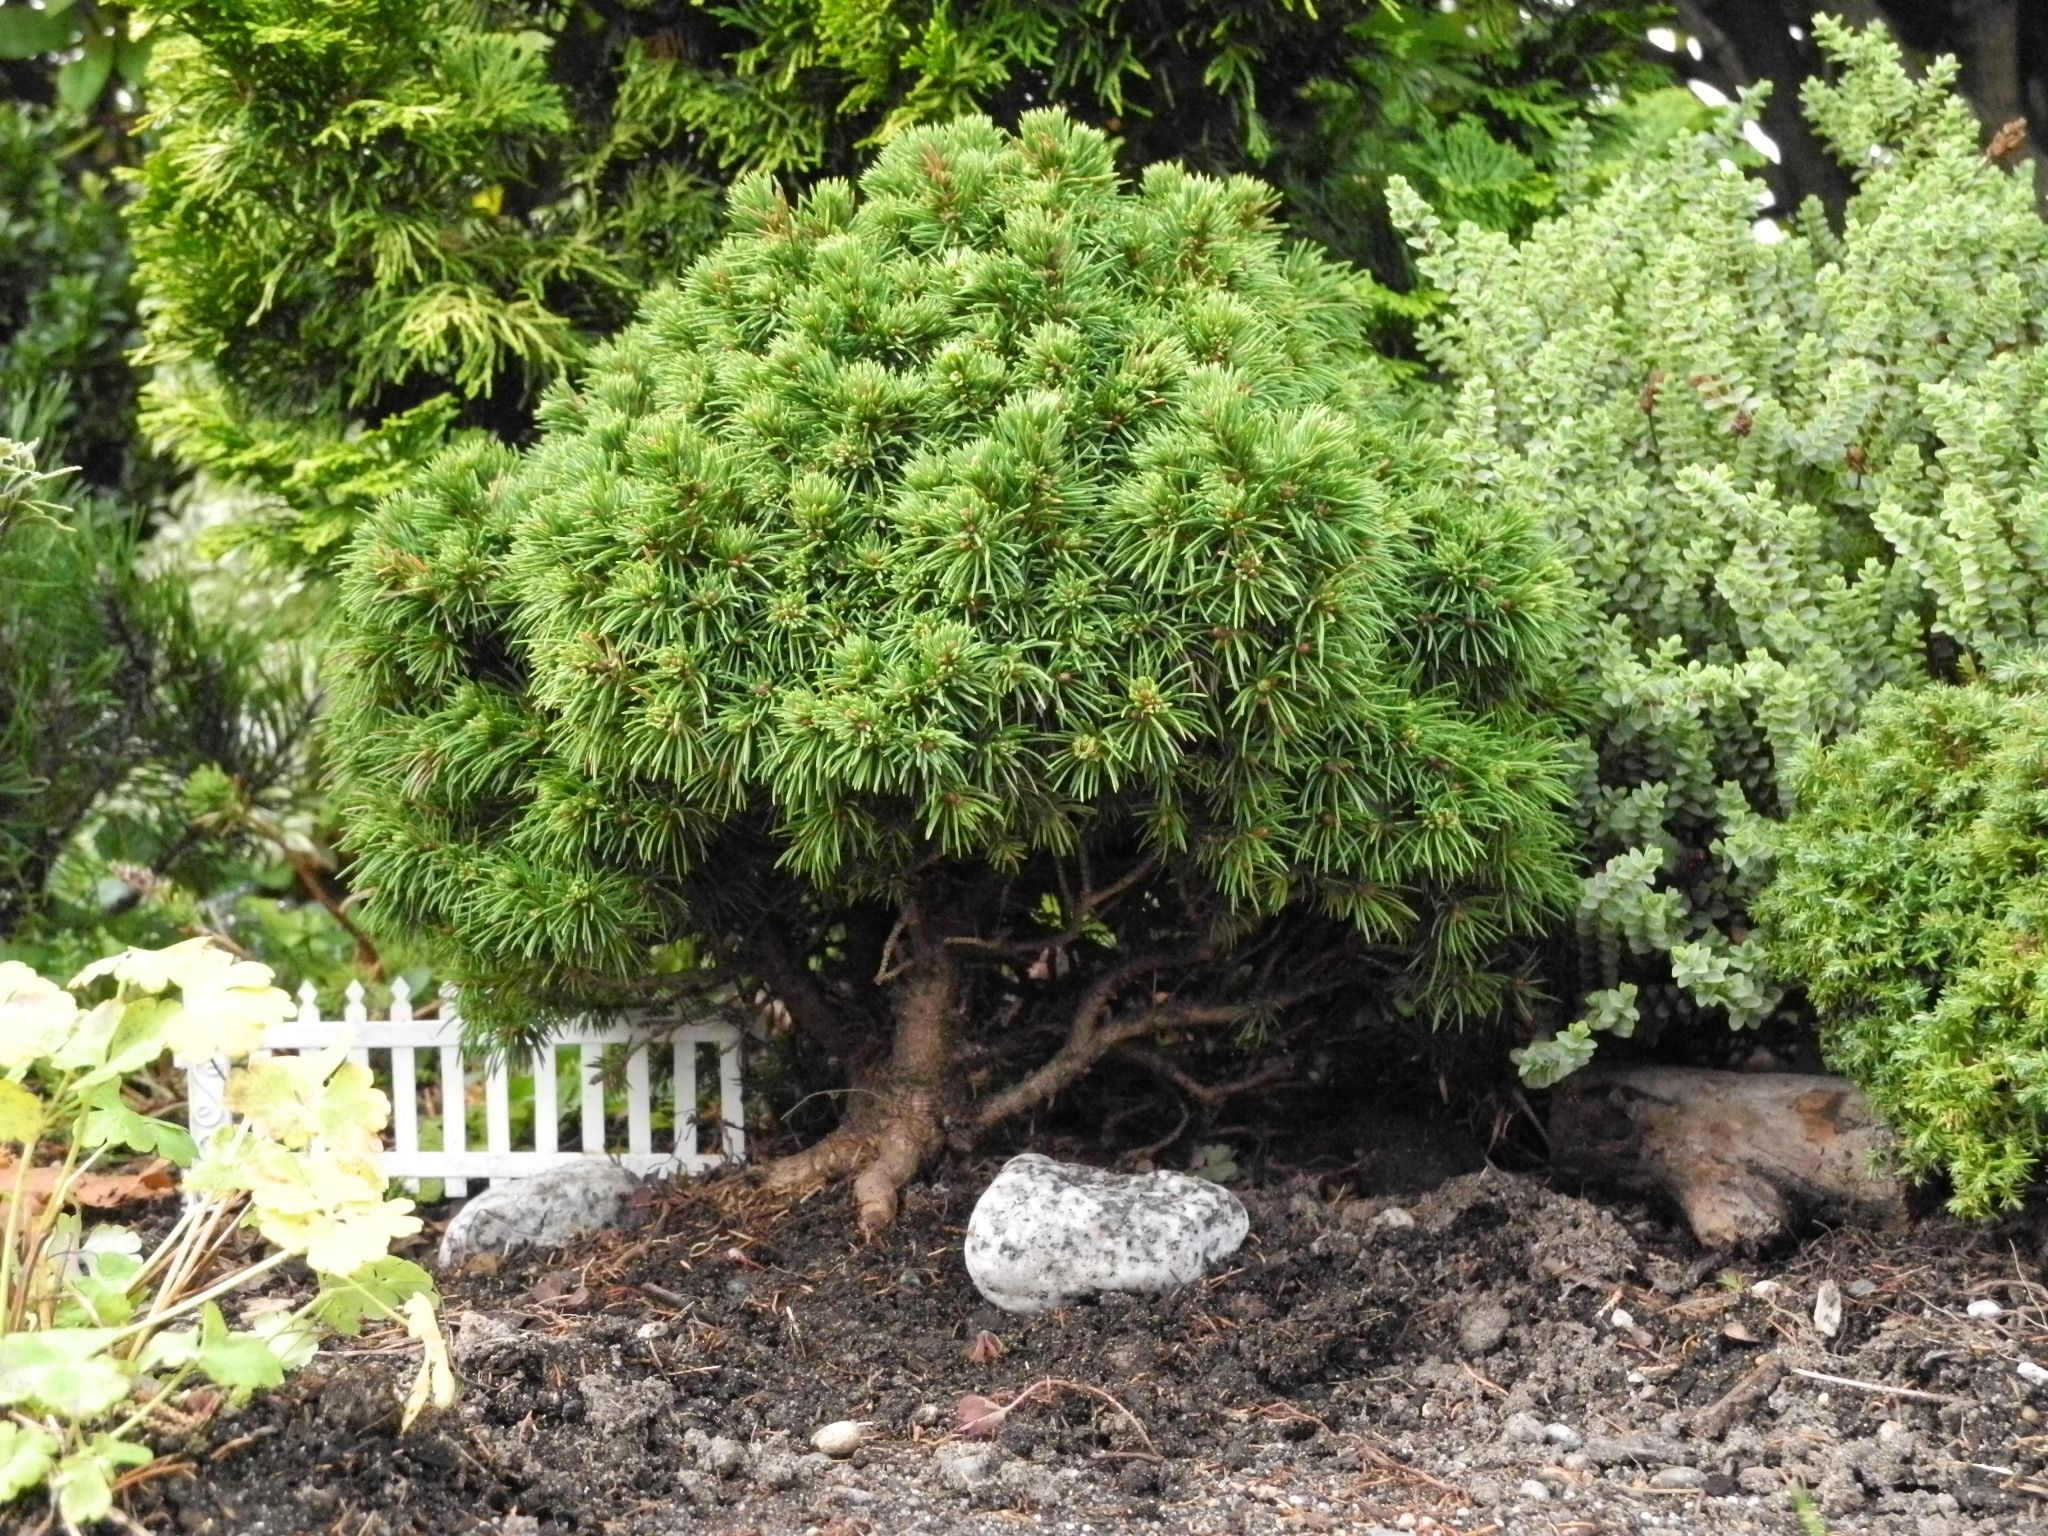 How to add authenticity to your miniature or fairy garden - growing miniature trees that look like ... trees! - tips and species to use